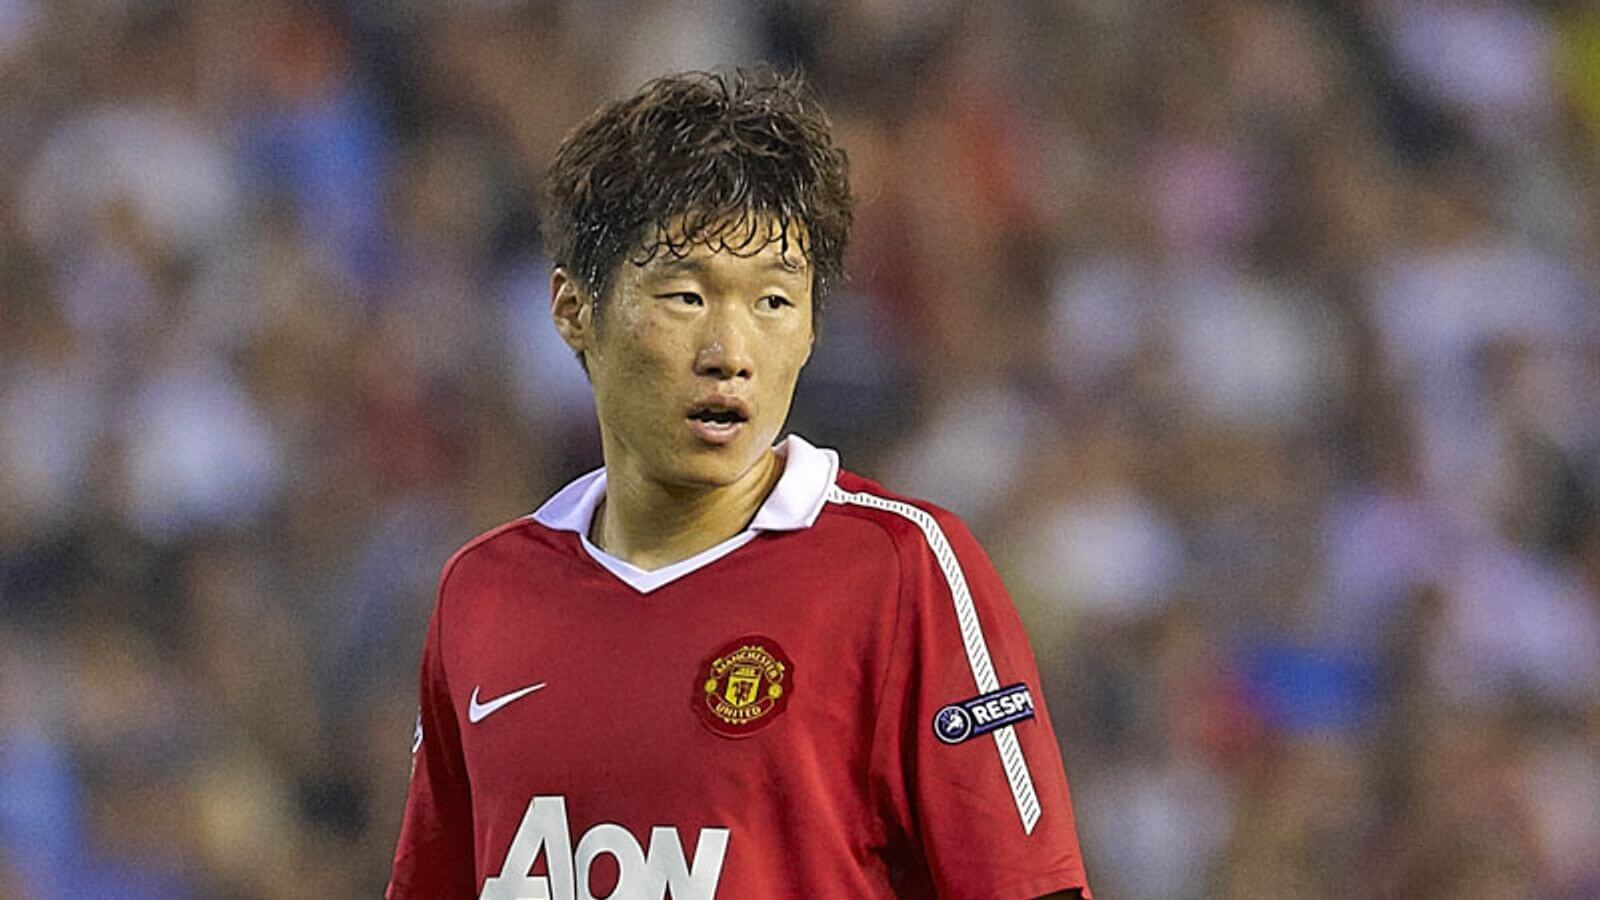 Park Ji-sung requested fans to stop singing his chant